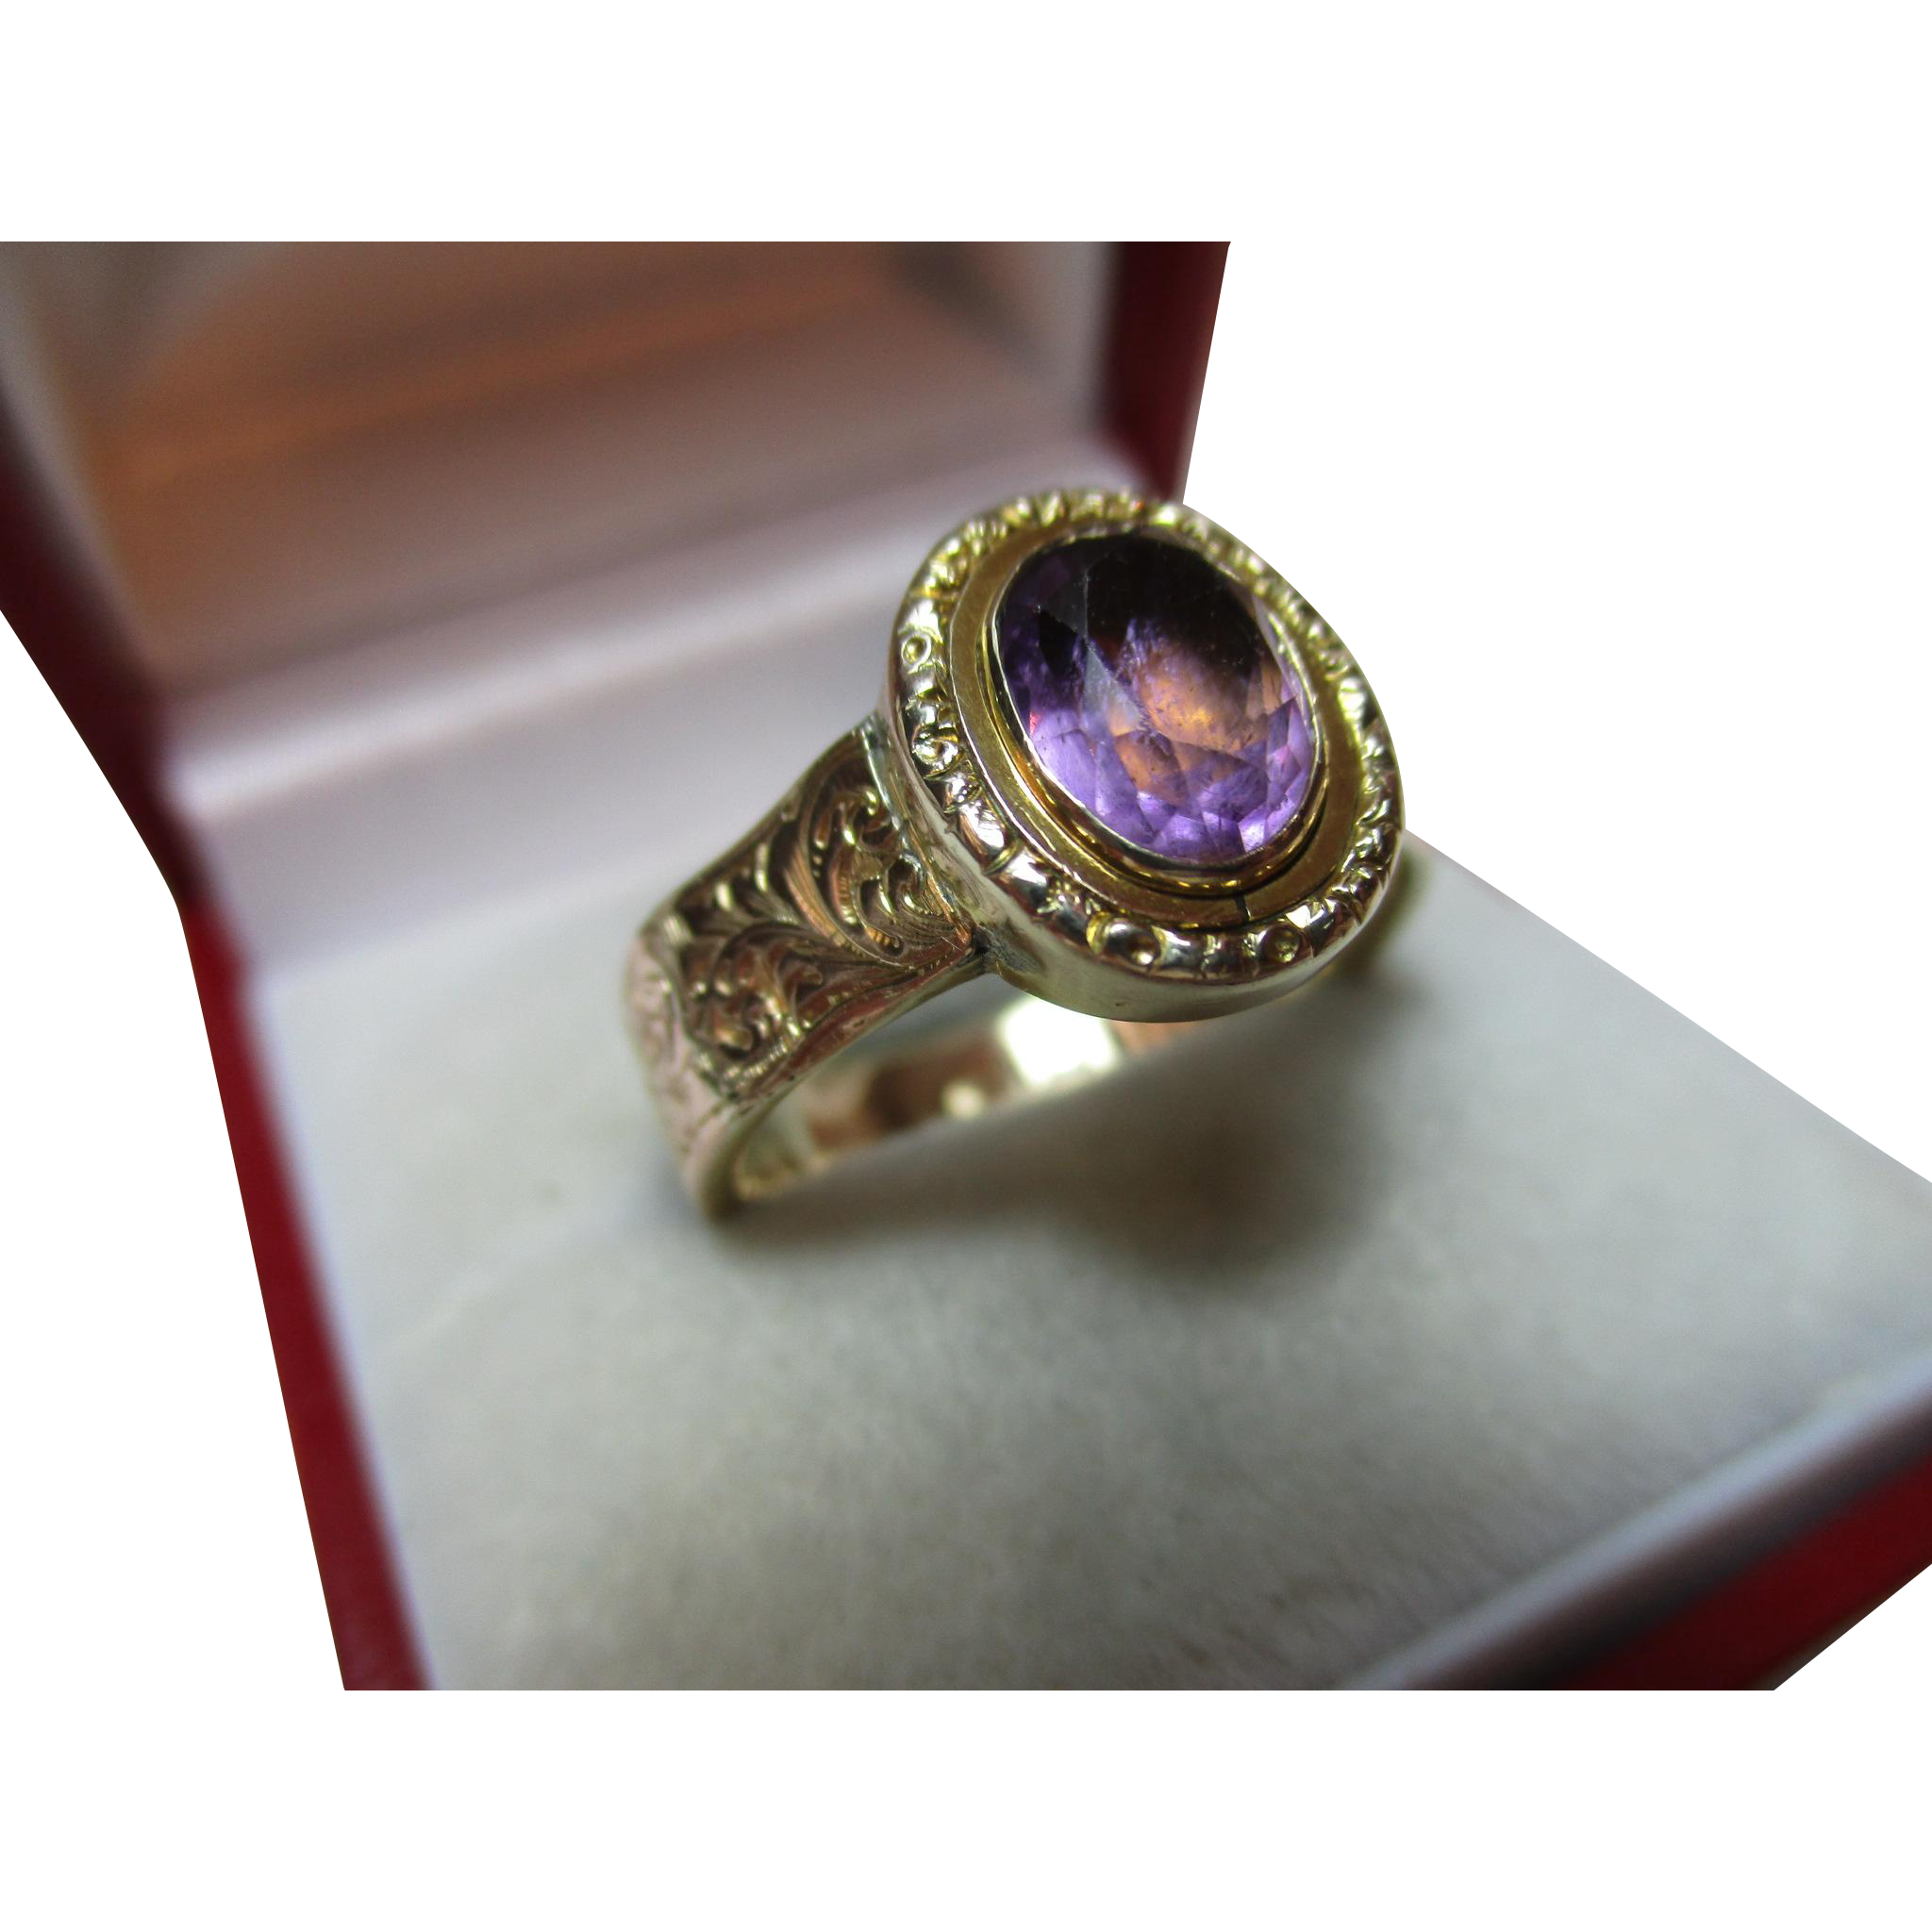 Delightful Antique 9ct Gold Amethyst Gemstone Ring{3.9 Grams}